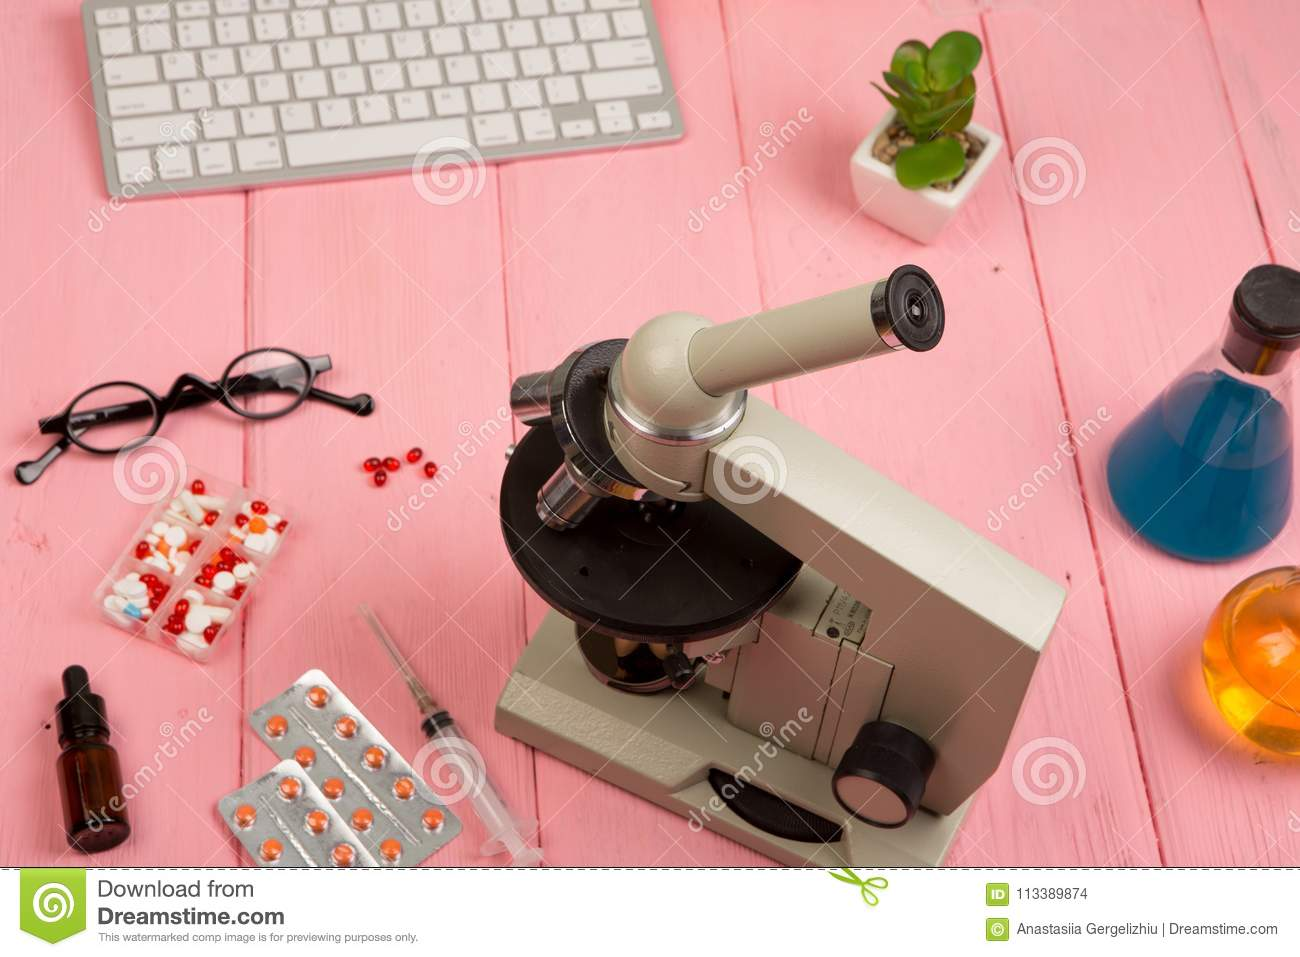 Workplace scientist / doctor - microscope, pills, syringe, eyeglasses, chemical flasks with liquid on pink wooden table